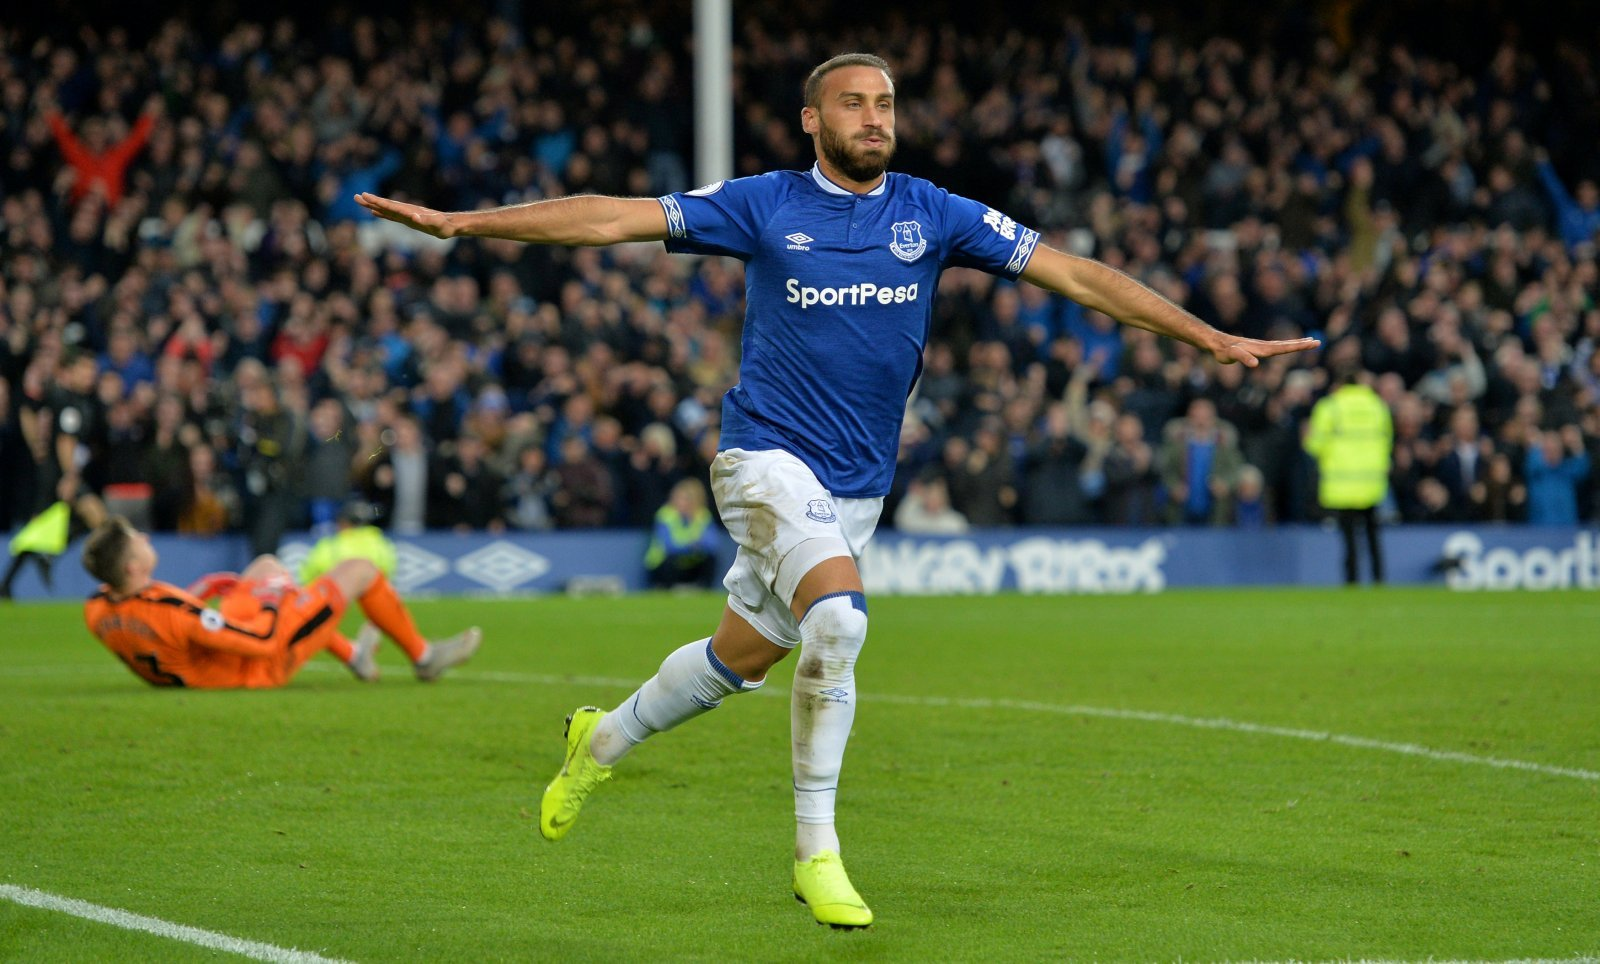 Crystal Palace move could be exactly what's needed to reignite Cenk Tosun's PL career